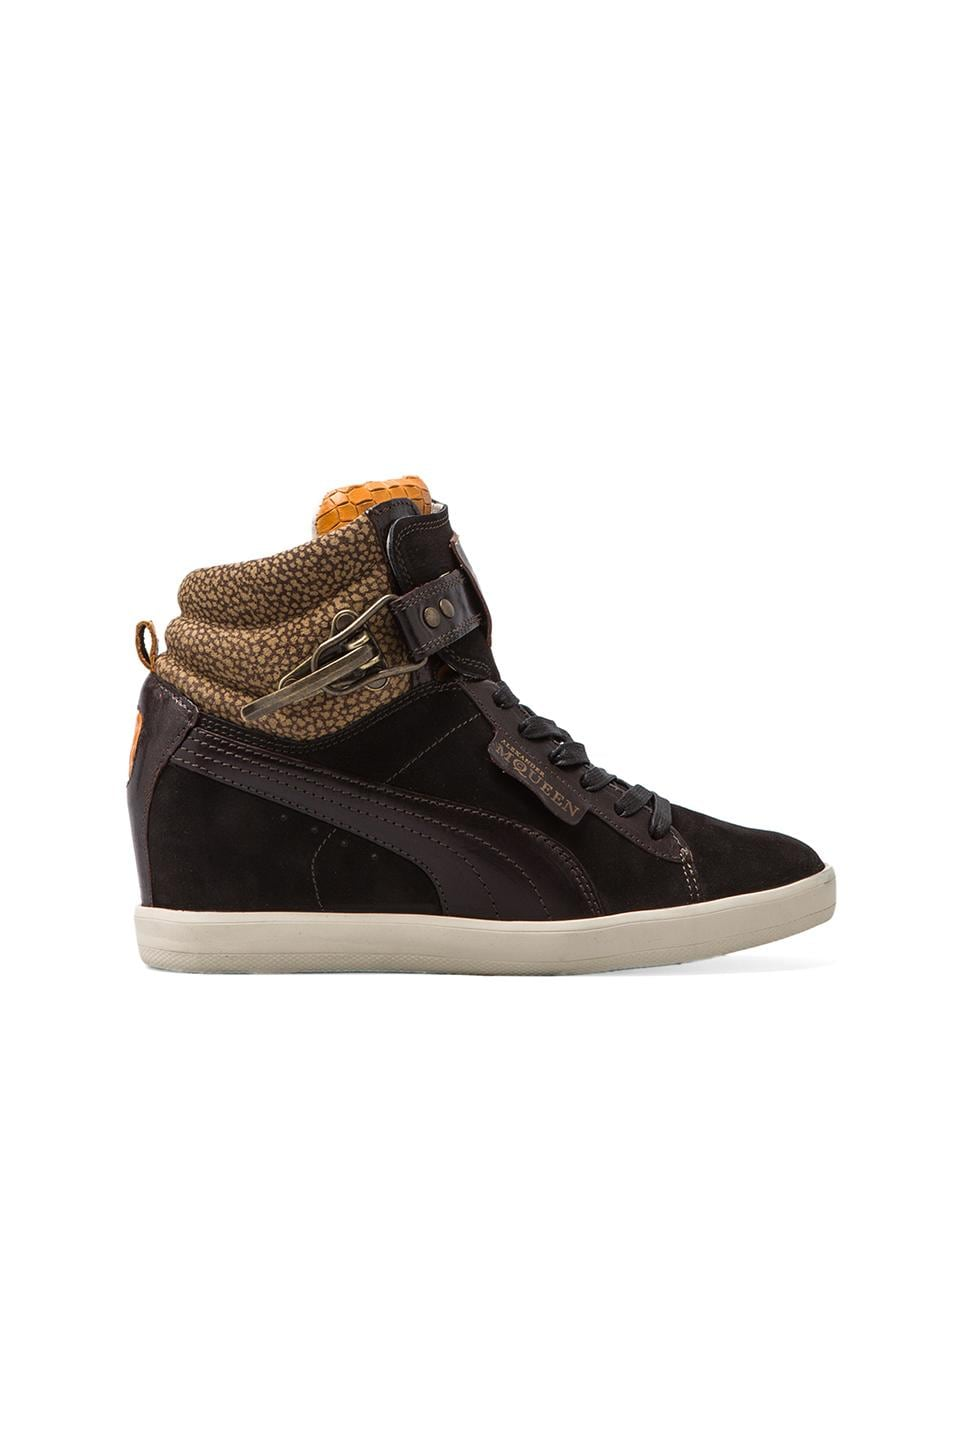 Alexander McQueen Puma Joustesse Mid Wedge Sneaker in Black